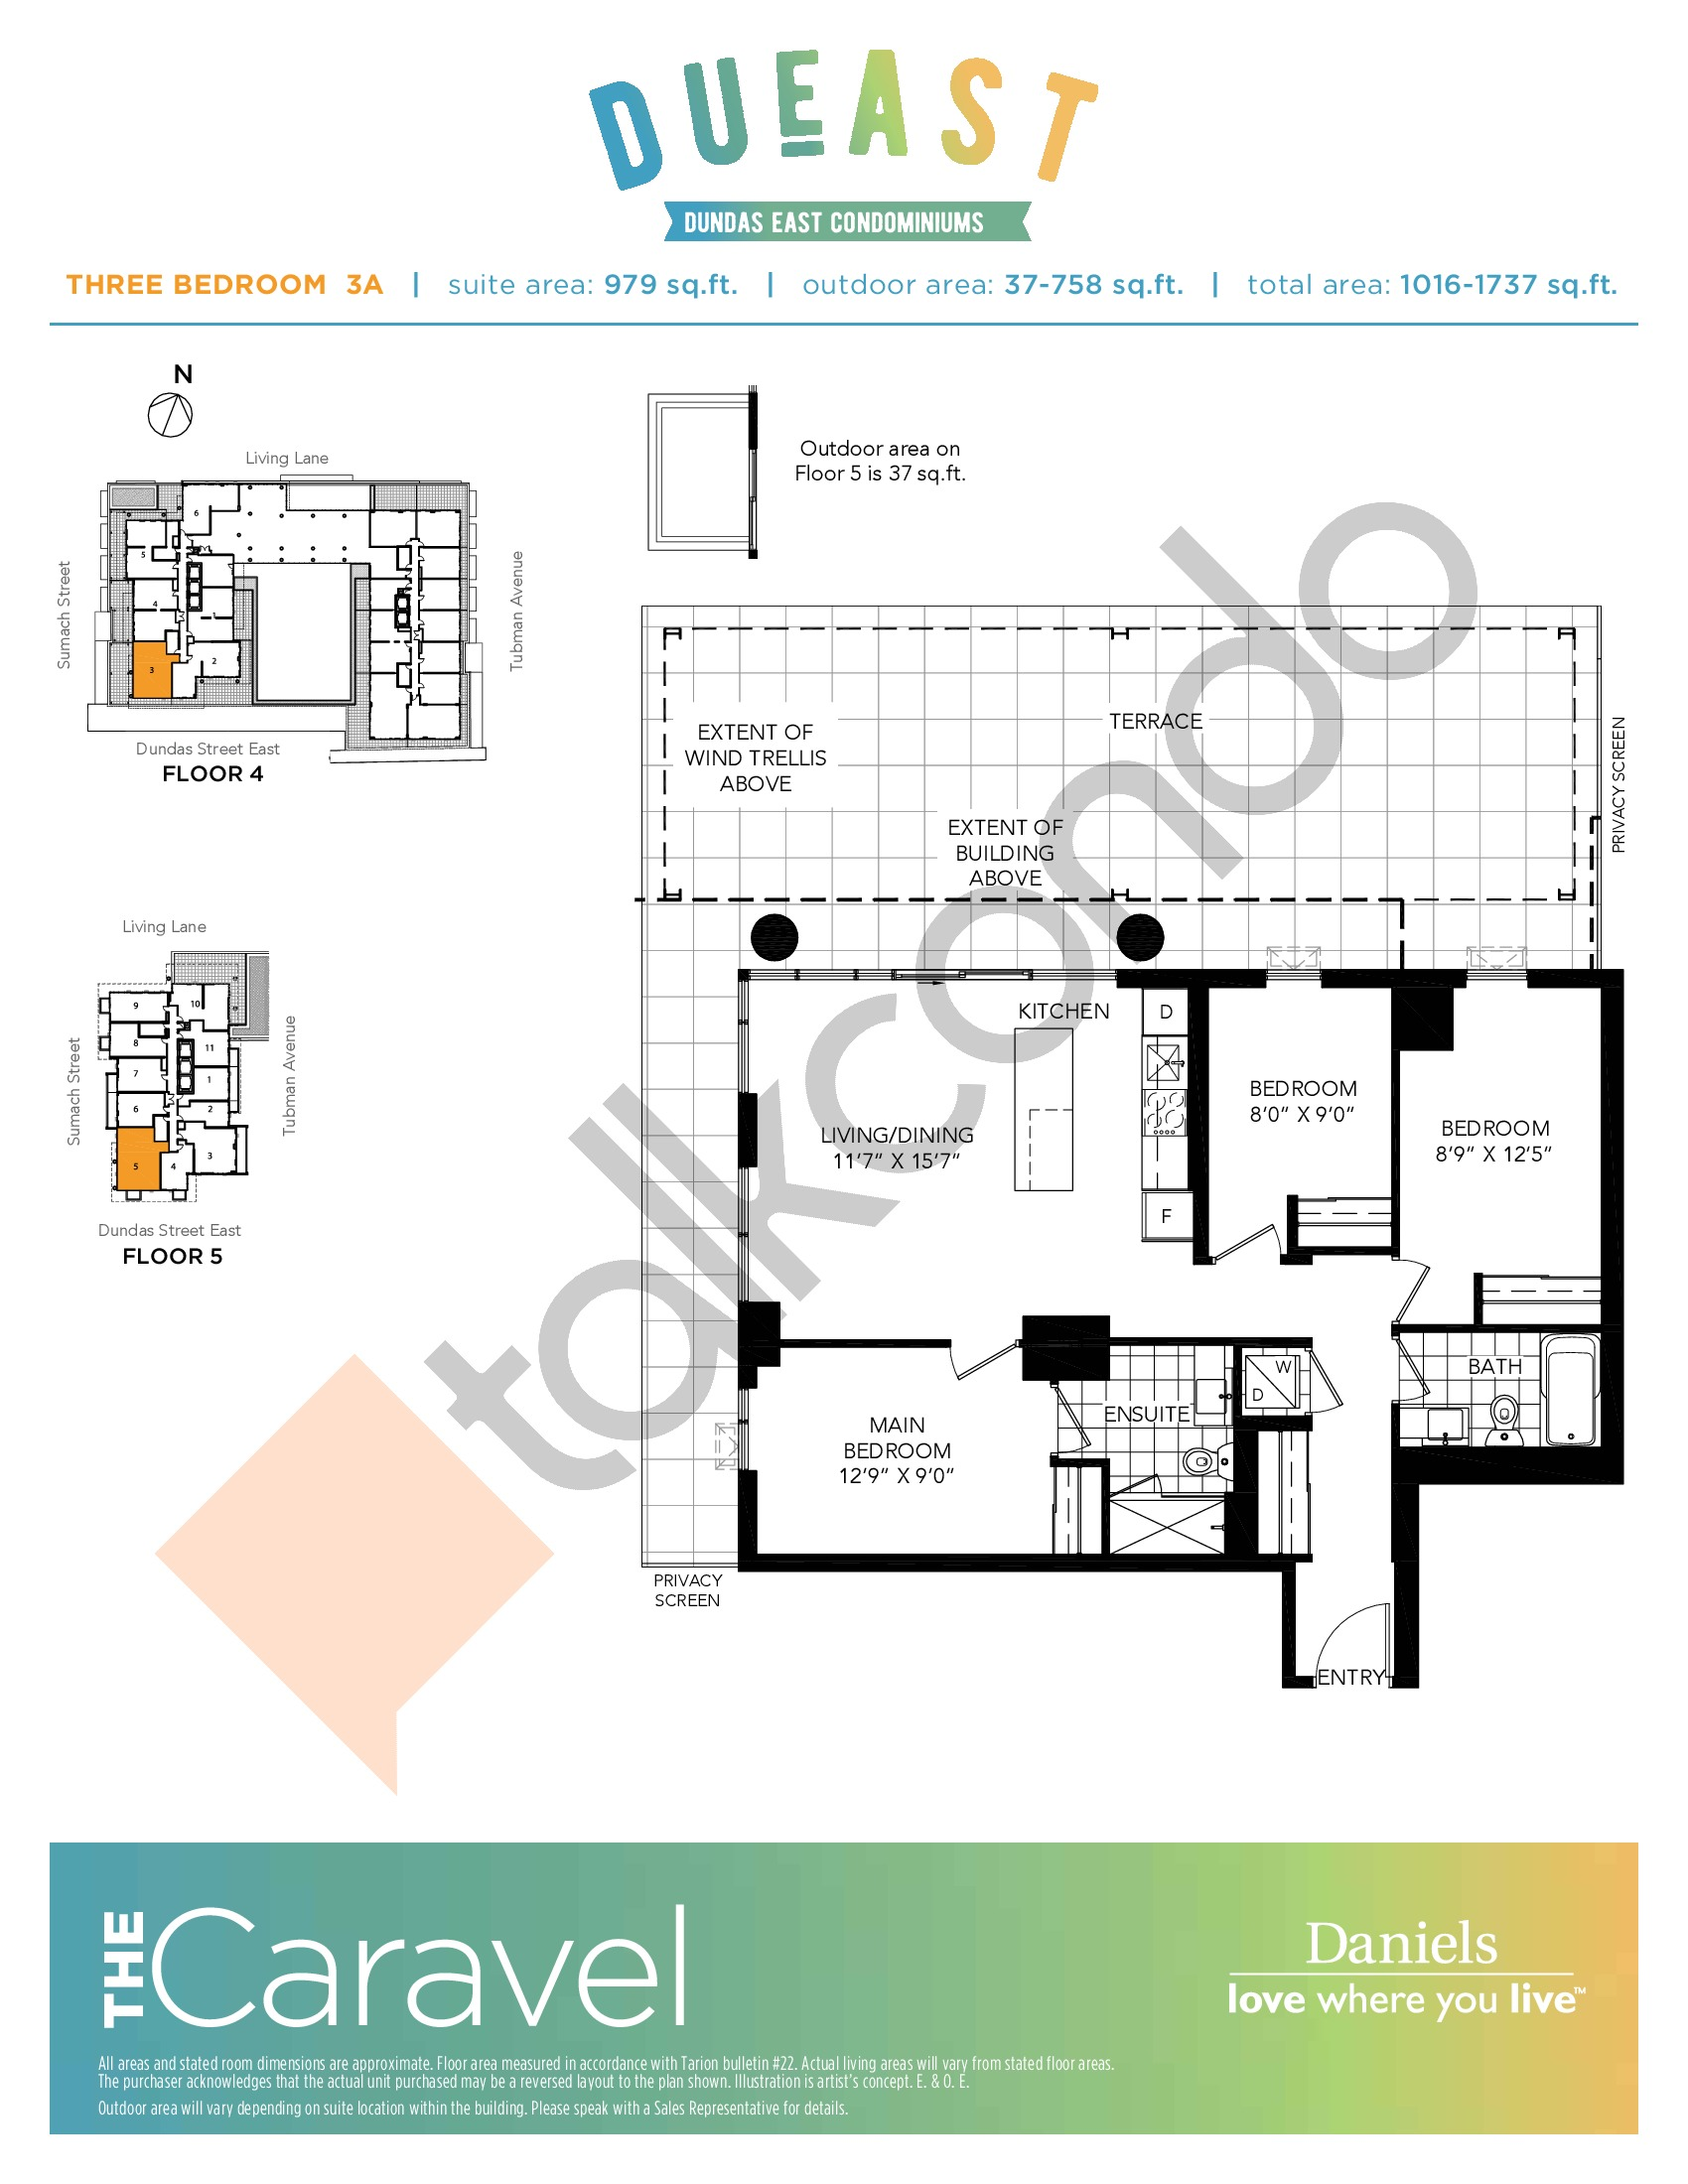 The Caravel (3A) Floor Plan at DuEast Condos - 979 sq.ft